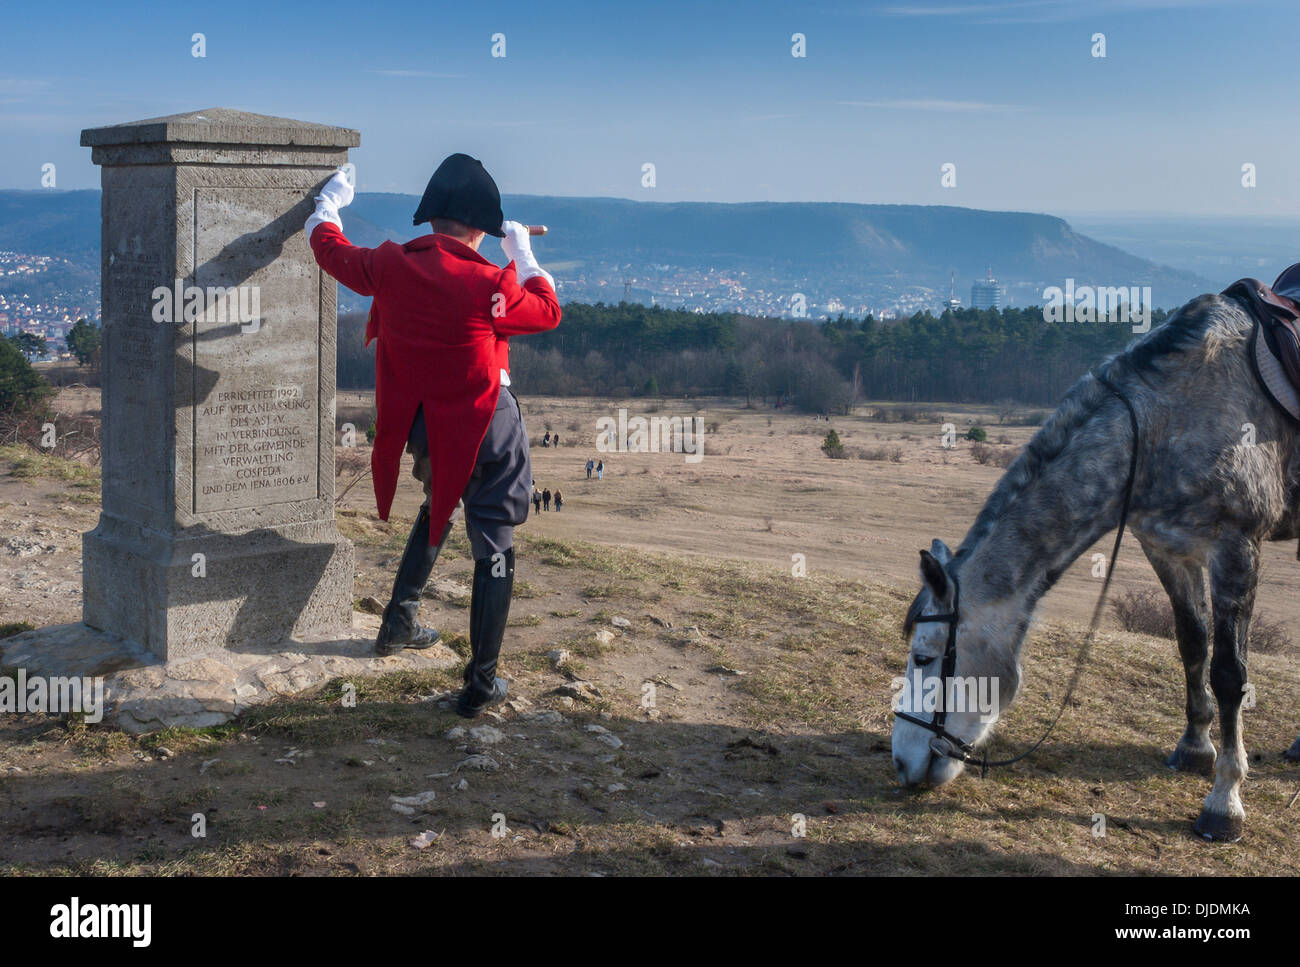 Napoleon with a telescope and horse next to his monument, pantomime Harald Seime, Battle of Jena–Auerstedt in 1806 - Stock Image